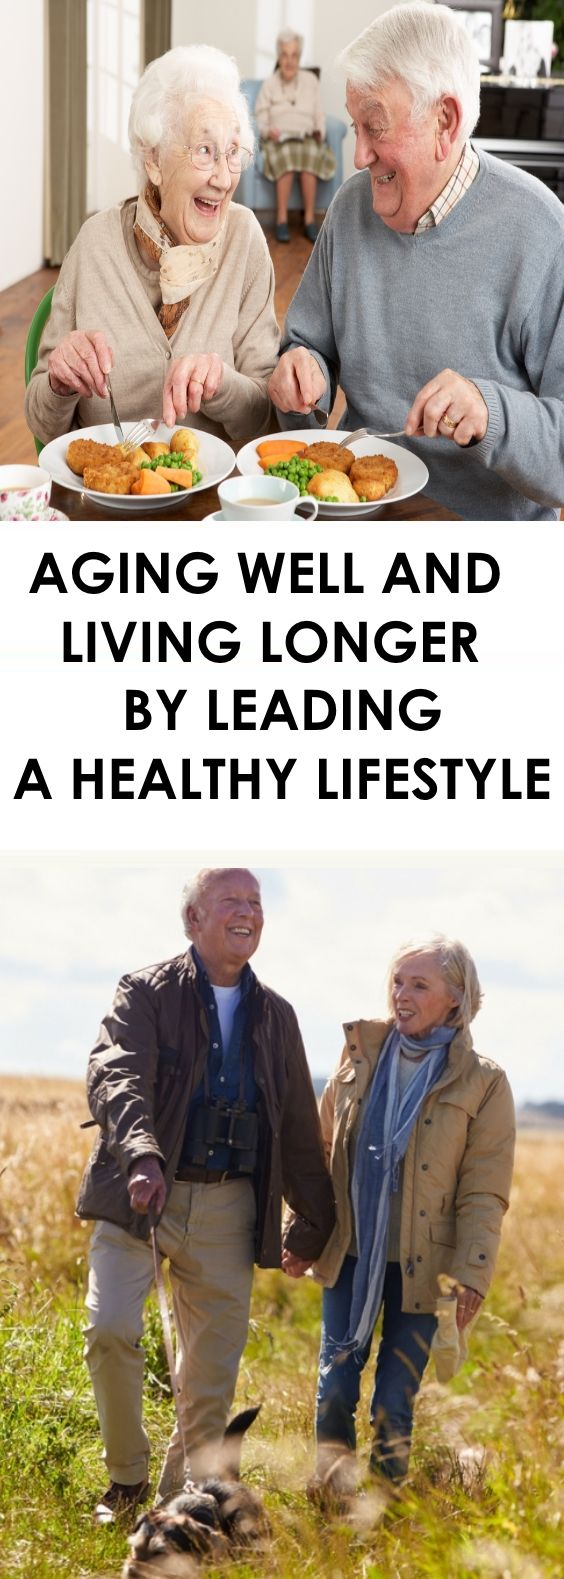 Aging Well and Living Longer by Leading a Healthy Lifestyle